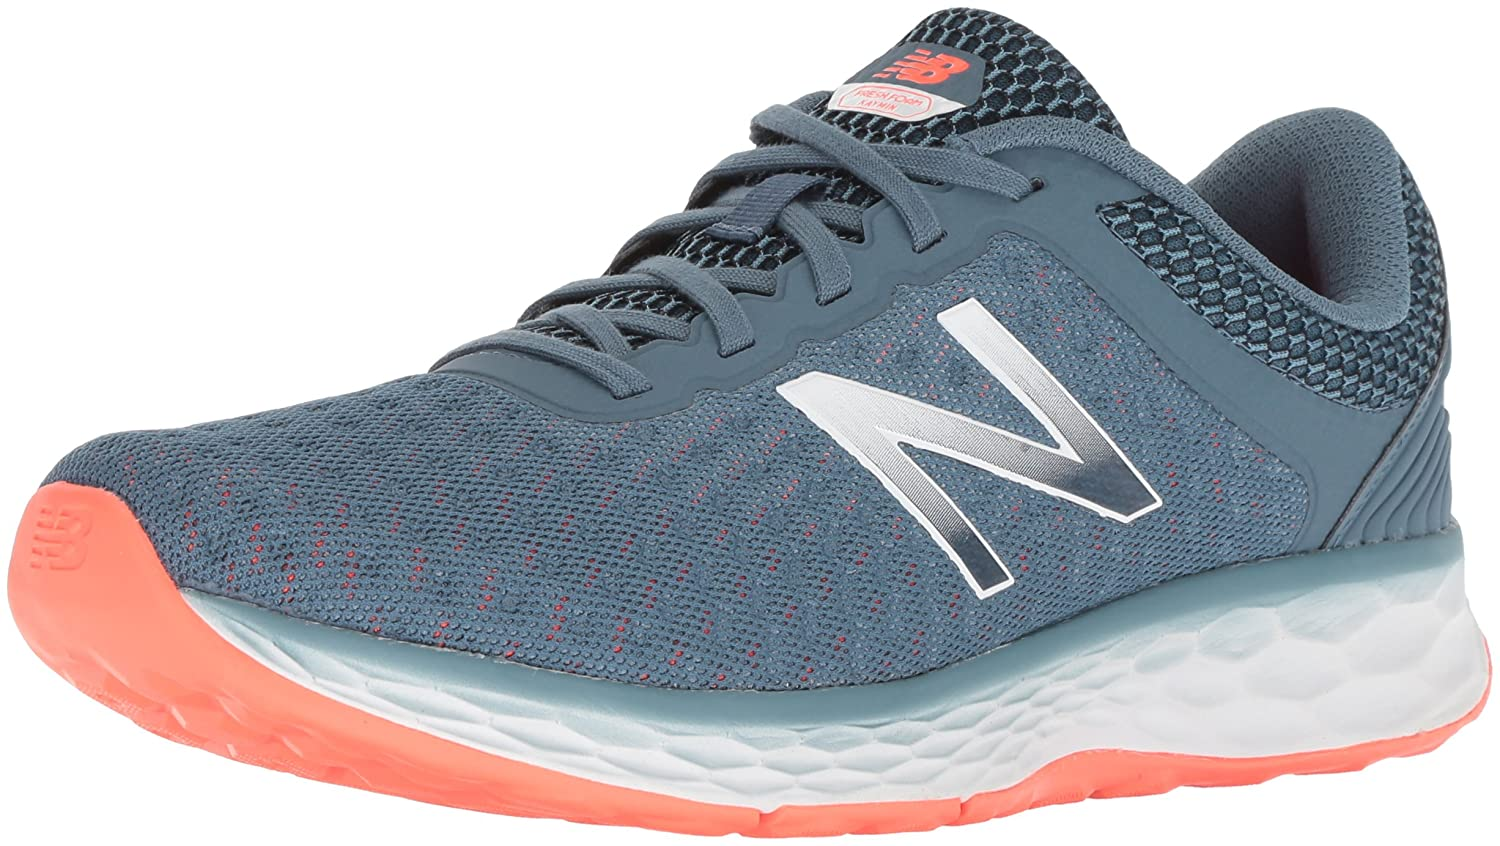 New Balance Women's Kaymin Trail v1 Fresh Foam Trail Running Shoe B075R84CTH 6.5 D US|Light Petrol